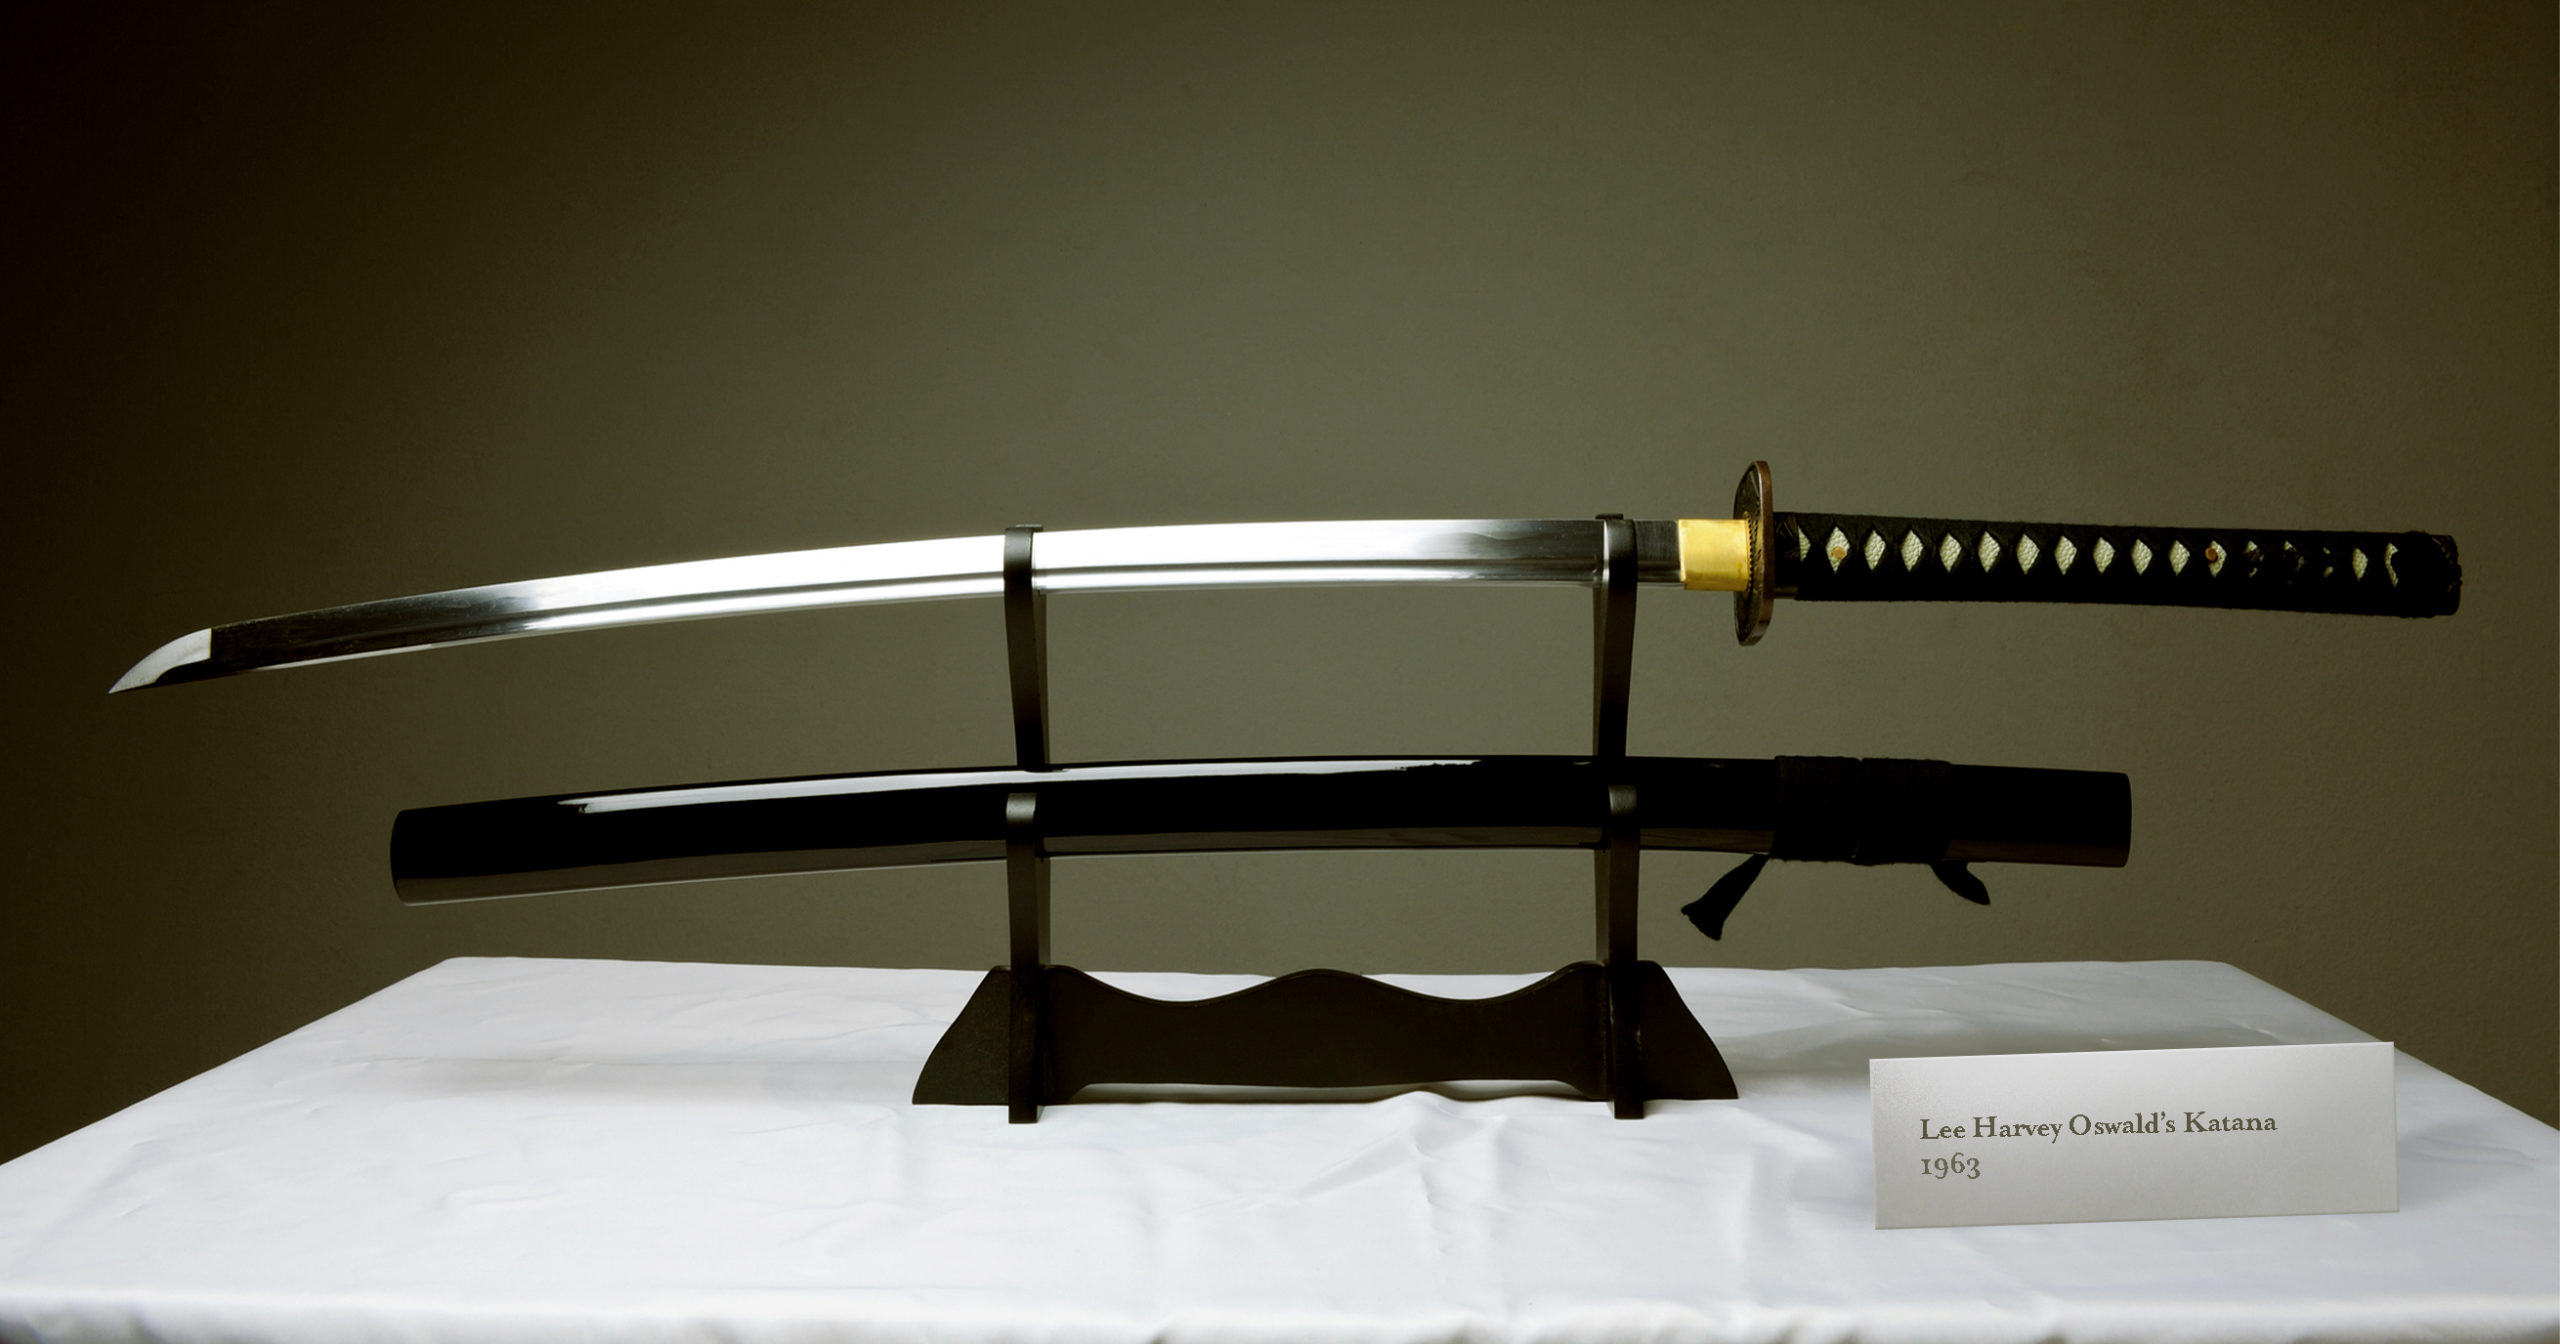 A Piece Of History: The Naginata That Lee Harvey Oswald Used To Cut Down JFK After Skillfully Deflecting A Mighty Blow From His Ōdachi Is Coming To The Smithsonian